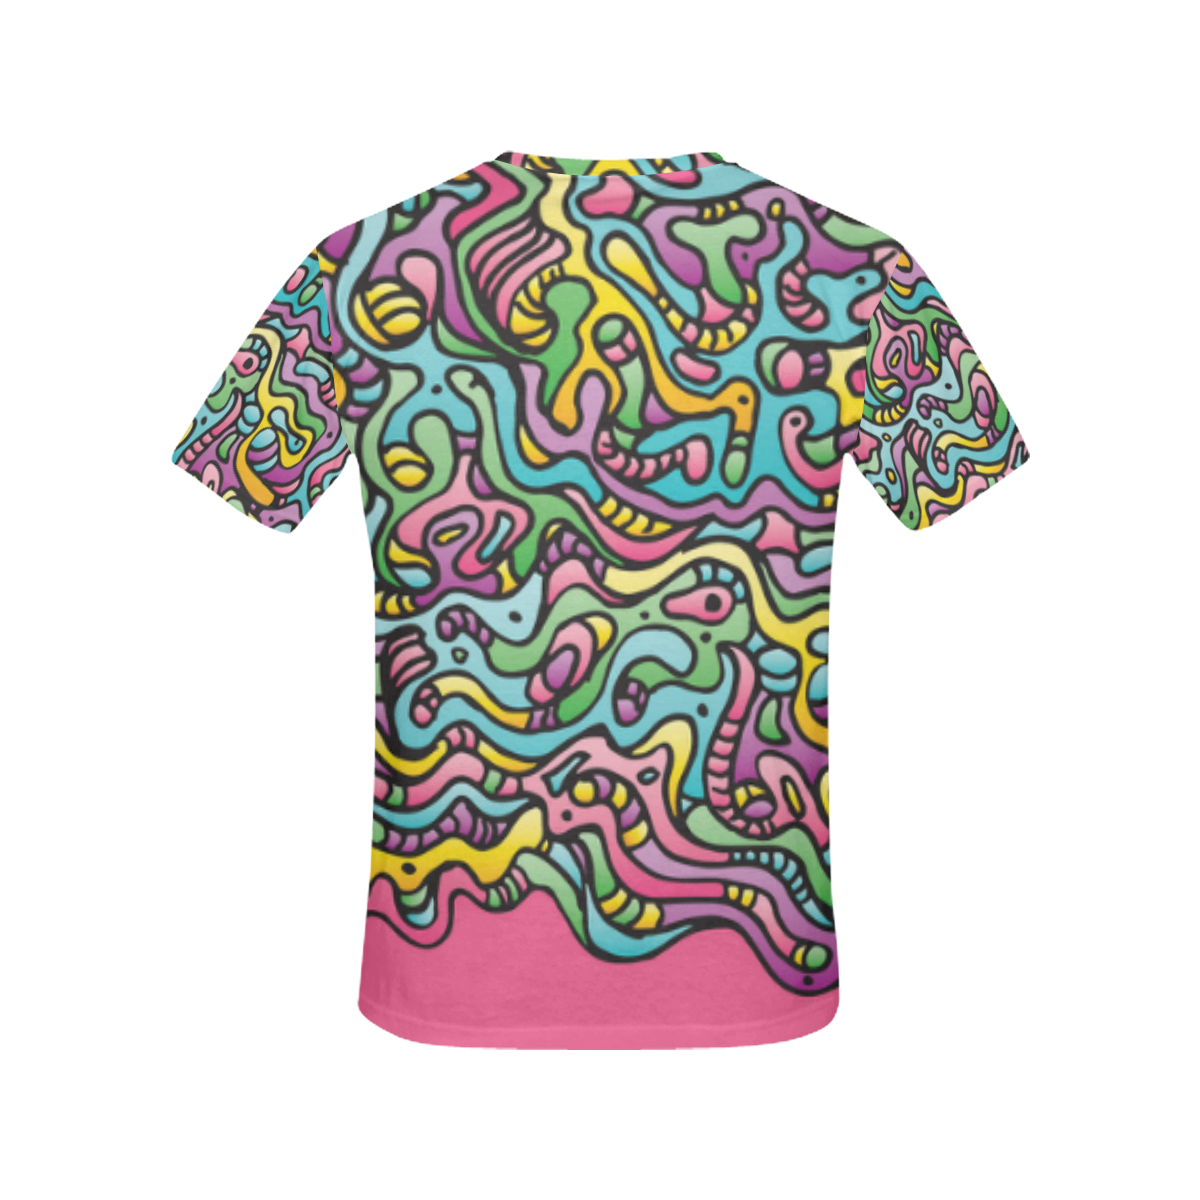 Colorful Tidal Pool, abstract animals, pink All Over Print T-Shirt for Women (USA Size) (Model T40)